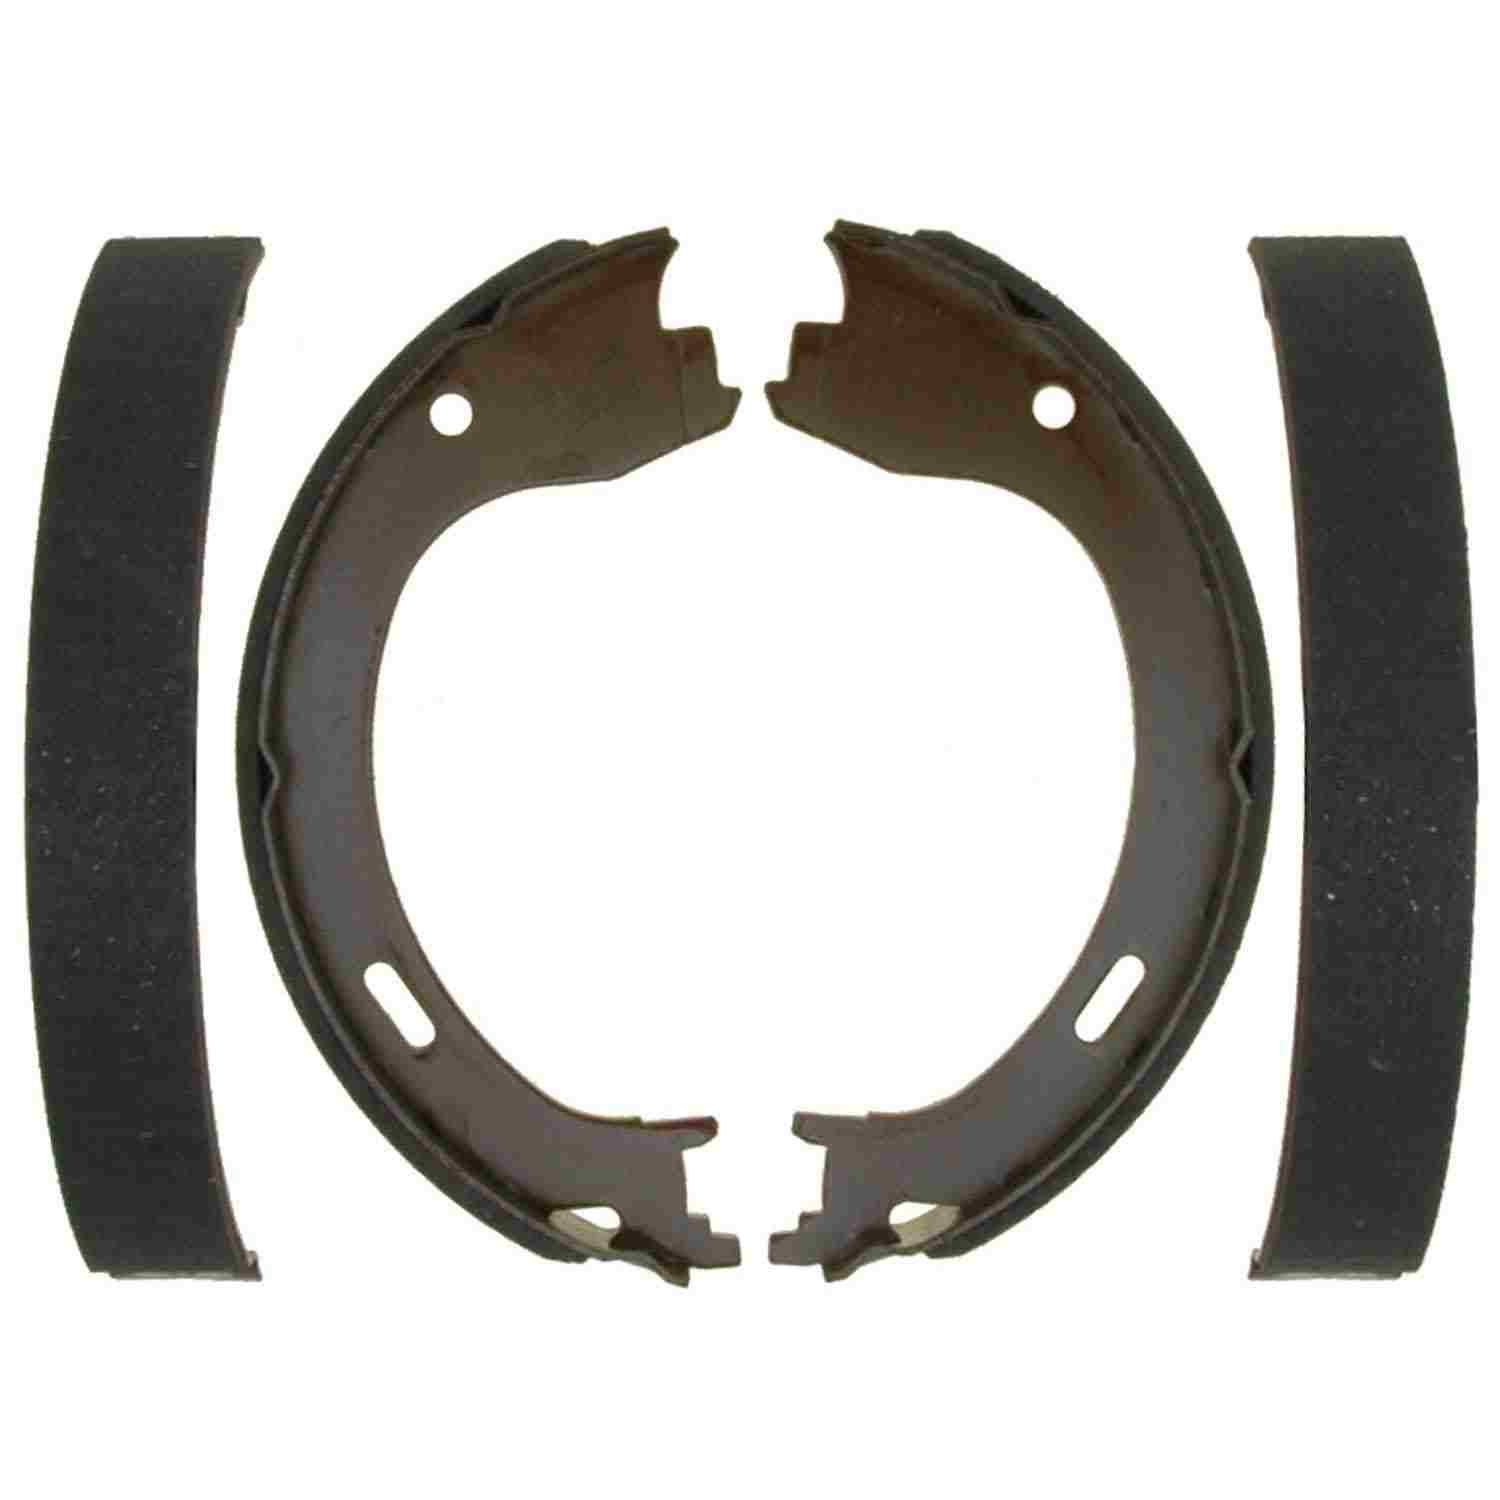 ACDELCO PROFESSIONAL BRAKES - Bonded Parking Brake Shoe (Rear) - ADU 17961B